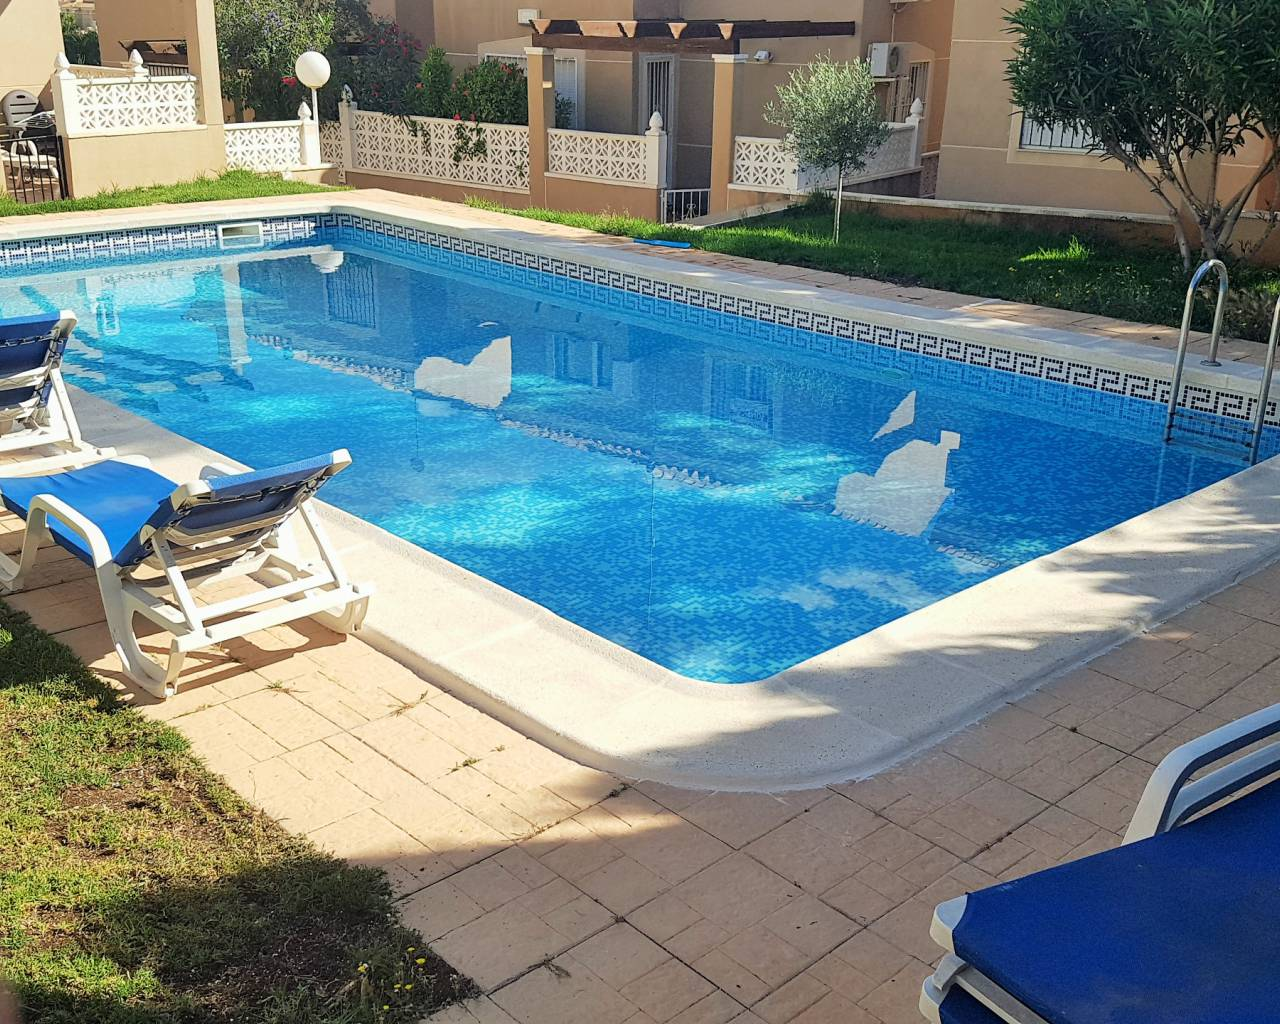 Revente - Detached Villa - Las Filipinas - Villamartin